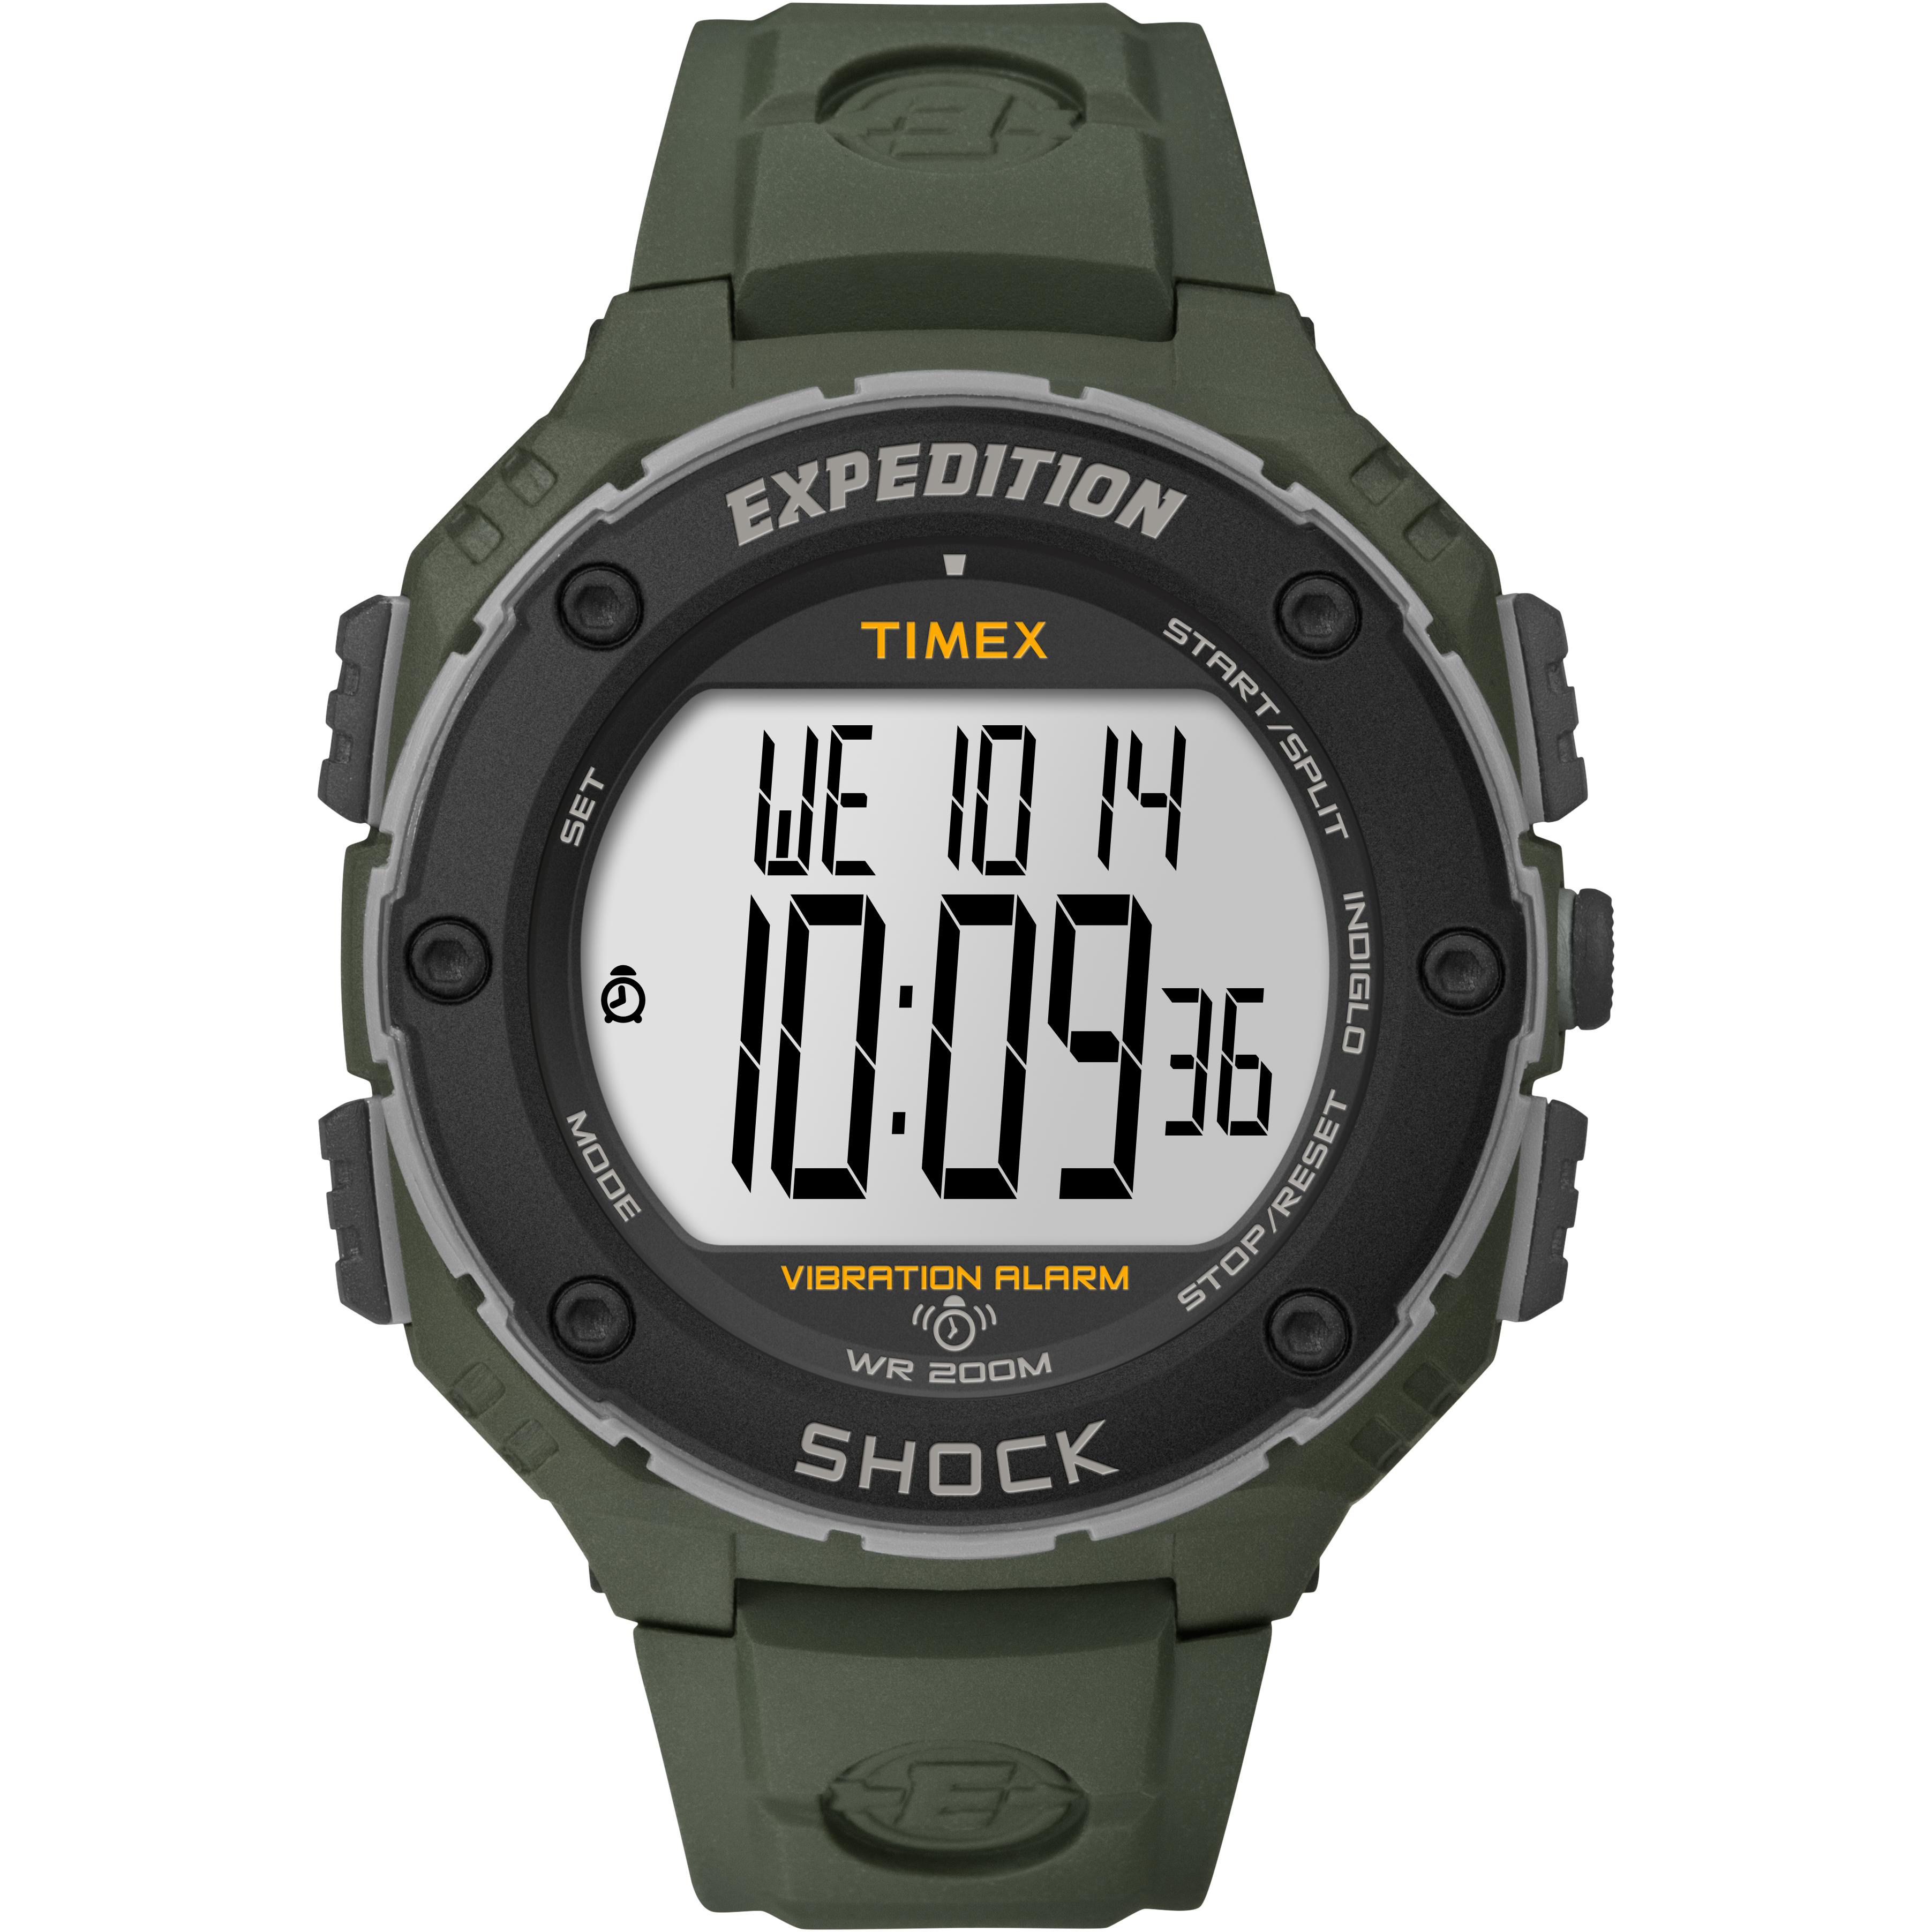 Men's Timex Expedition Full Size Black Digital Watch TW4B07700 |Timex Expedition Digital Watches Men